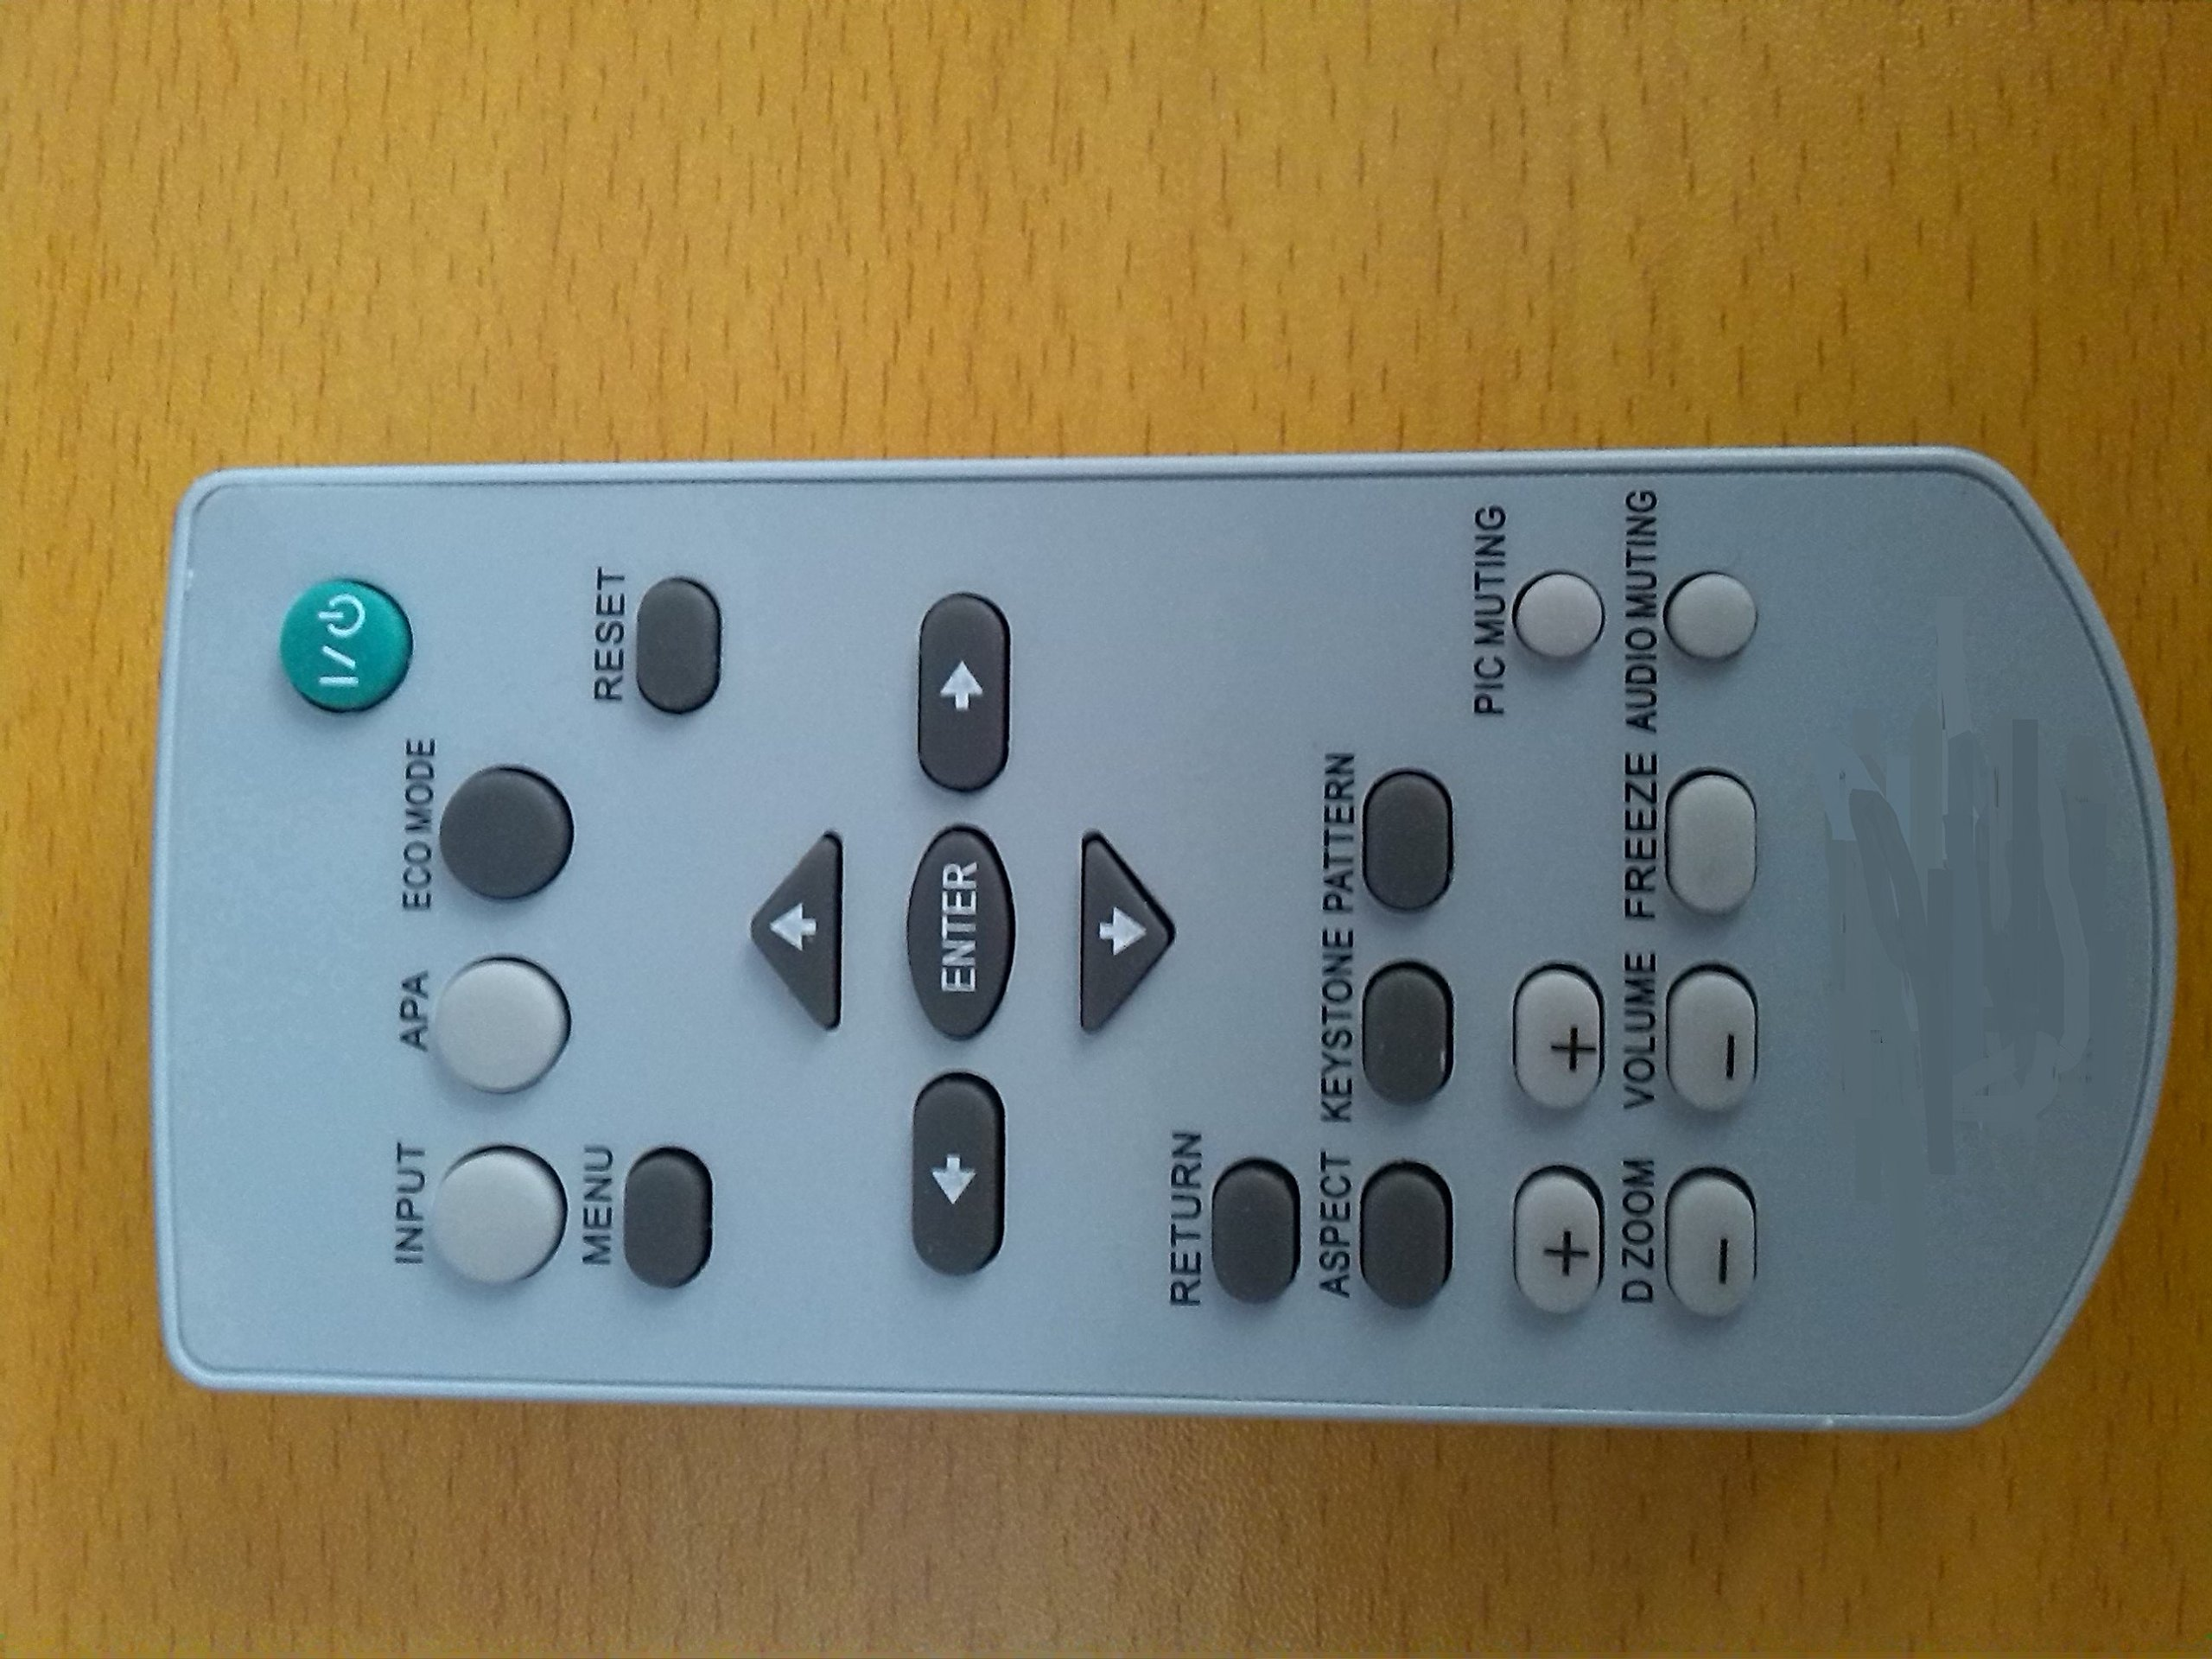 Brand New ELECTRON Top Quality General Universal Compatible Replacement Projector Remote Control Fit For Sony VPL-CX70 VPL-CX71 PJ7 RM-PJ8 RM-PJ6 RM-PJ9 VPL-BW12S VPL-BW5 VPL-BW7 Projector